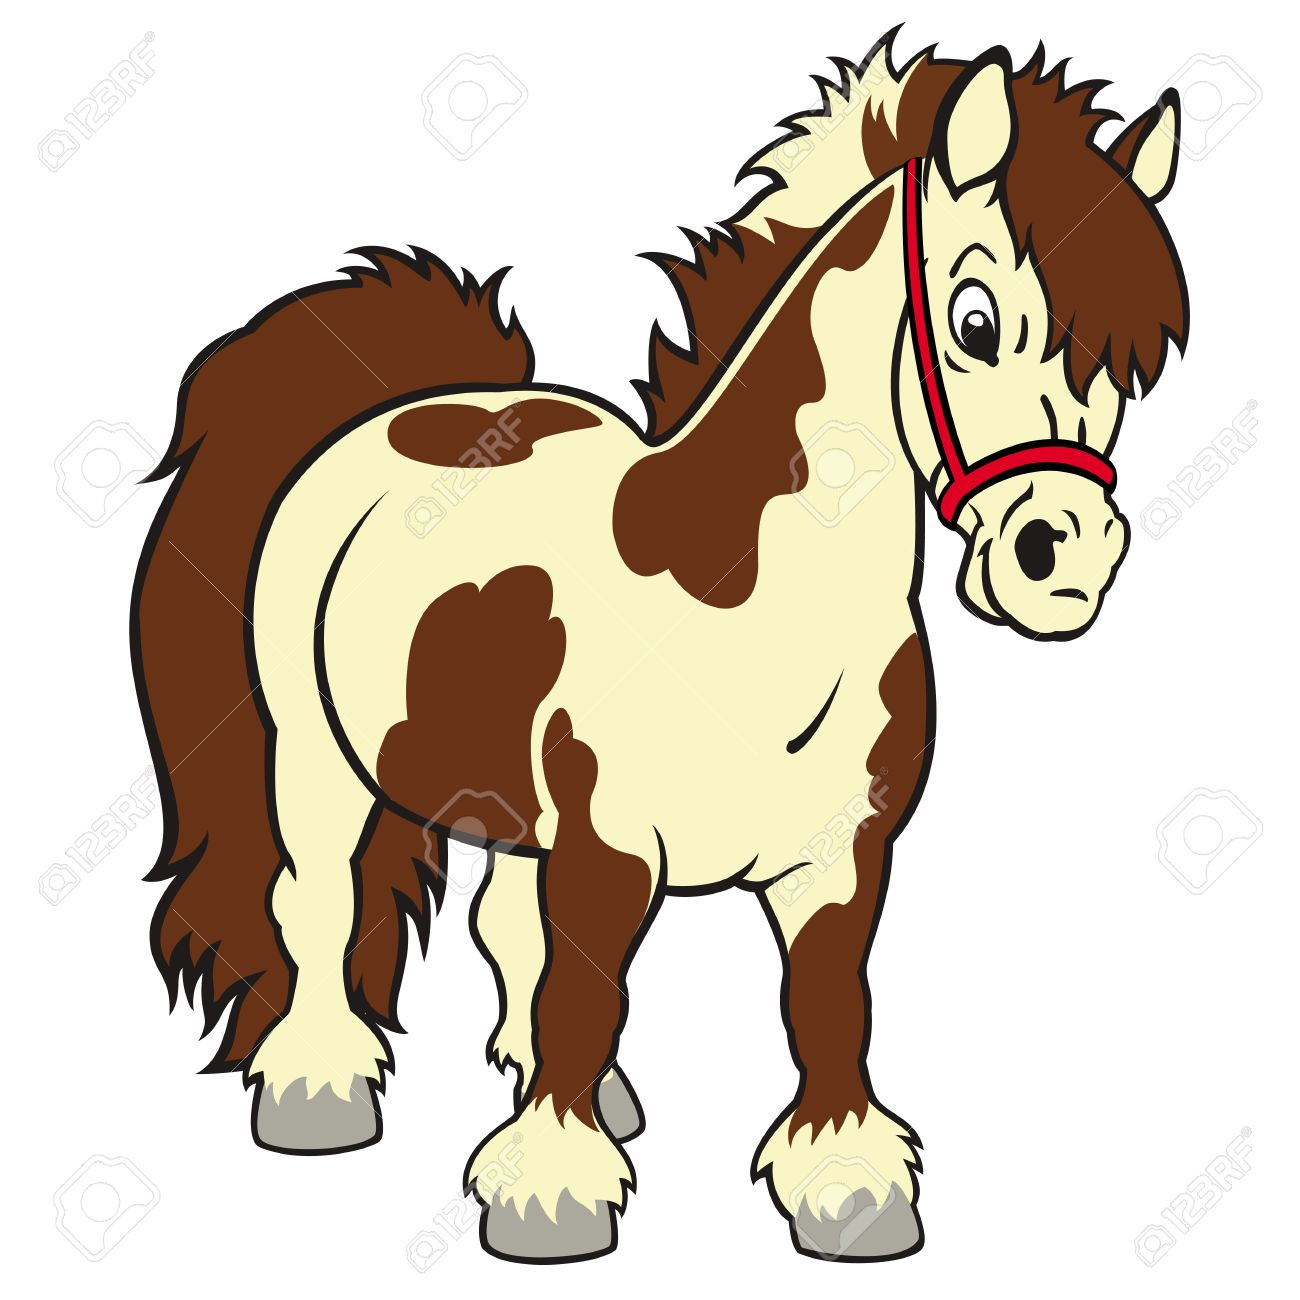 horse,Shetland pony,small,cartoon vector image isolated on white background,children illustration,picture for little kids Stock Vector - 15994085